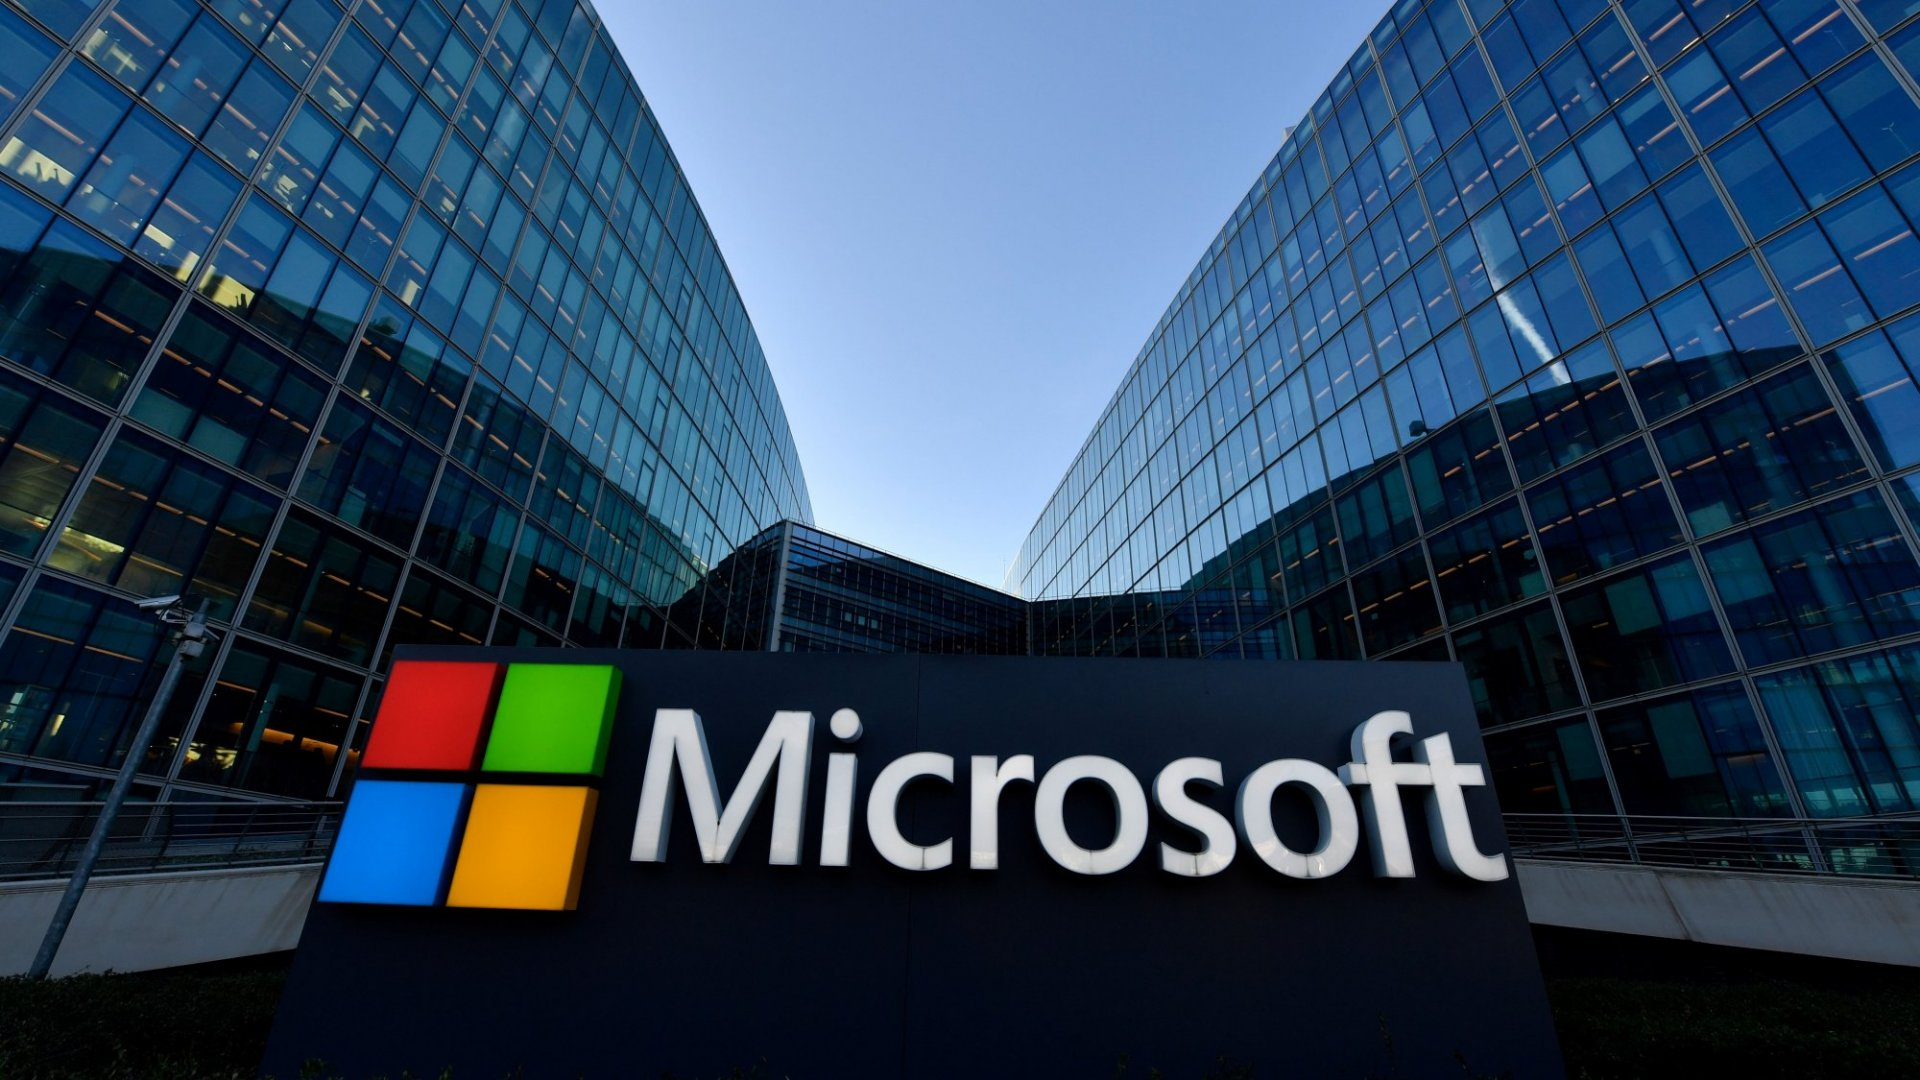 In a Recent Study, Microsoft Found That the Most Successful Teams Share These 5 Traits